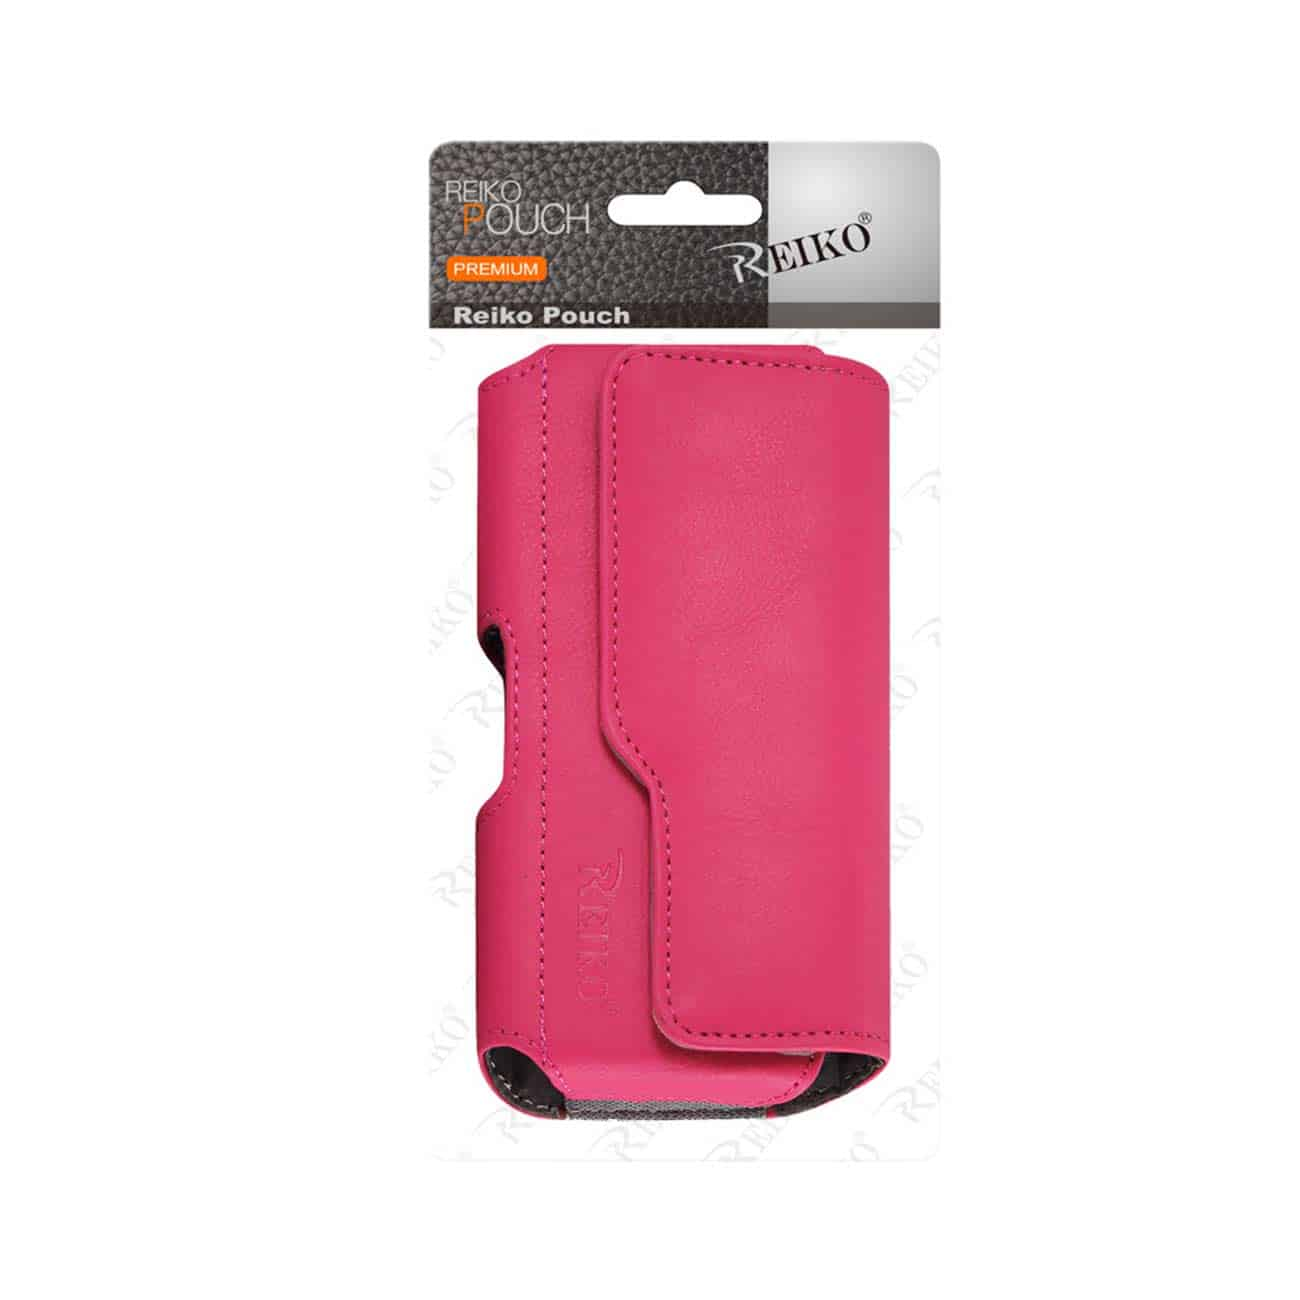 HORIZONTAL Z LID LEATHER POUCH SAMSUNG GALAXY S3/ I9300/ R53 X PLUS HOT PINK